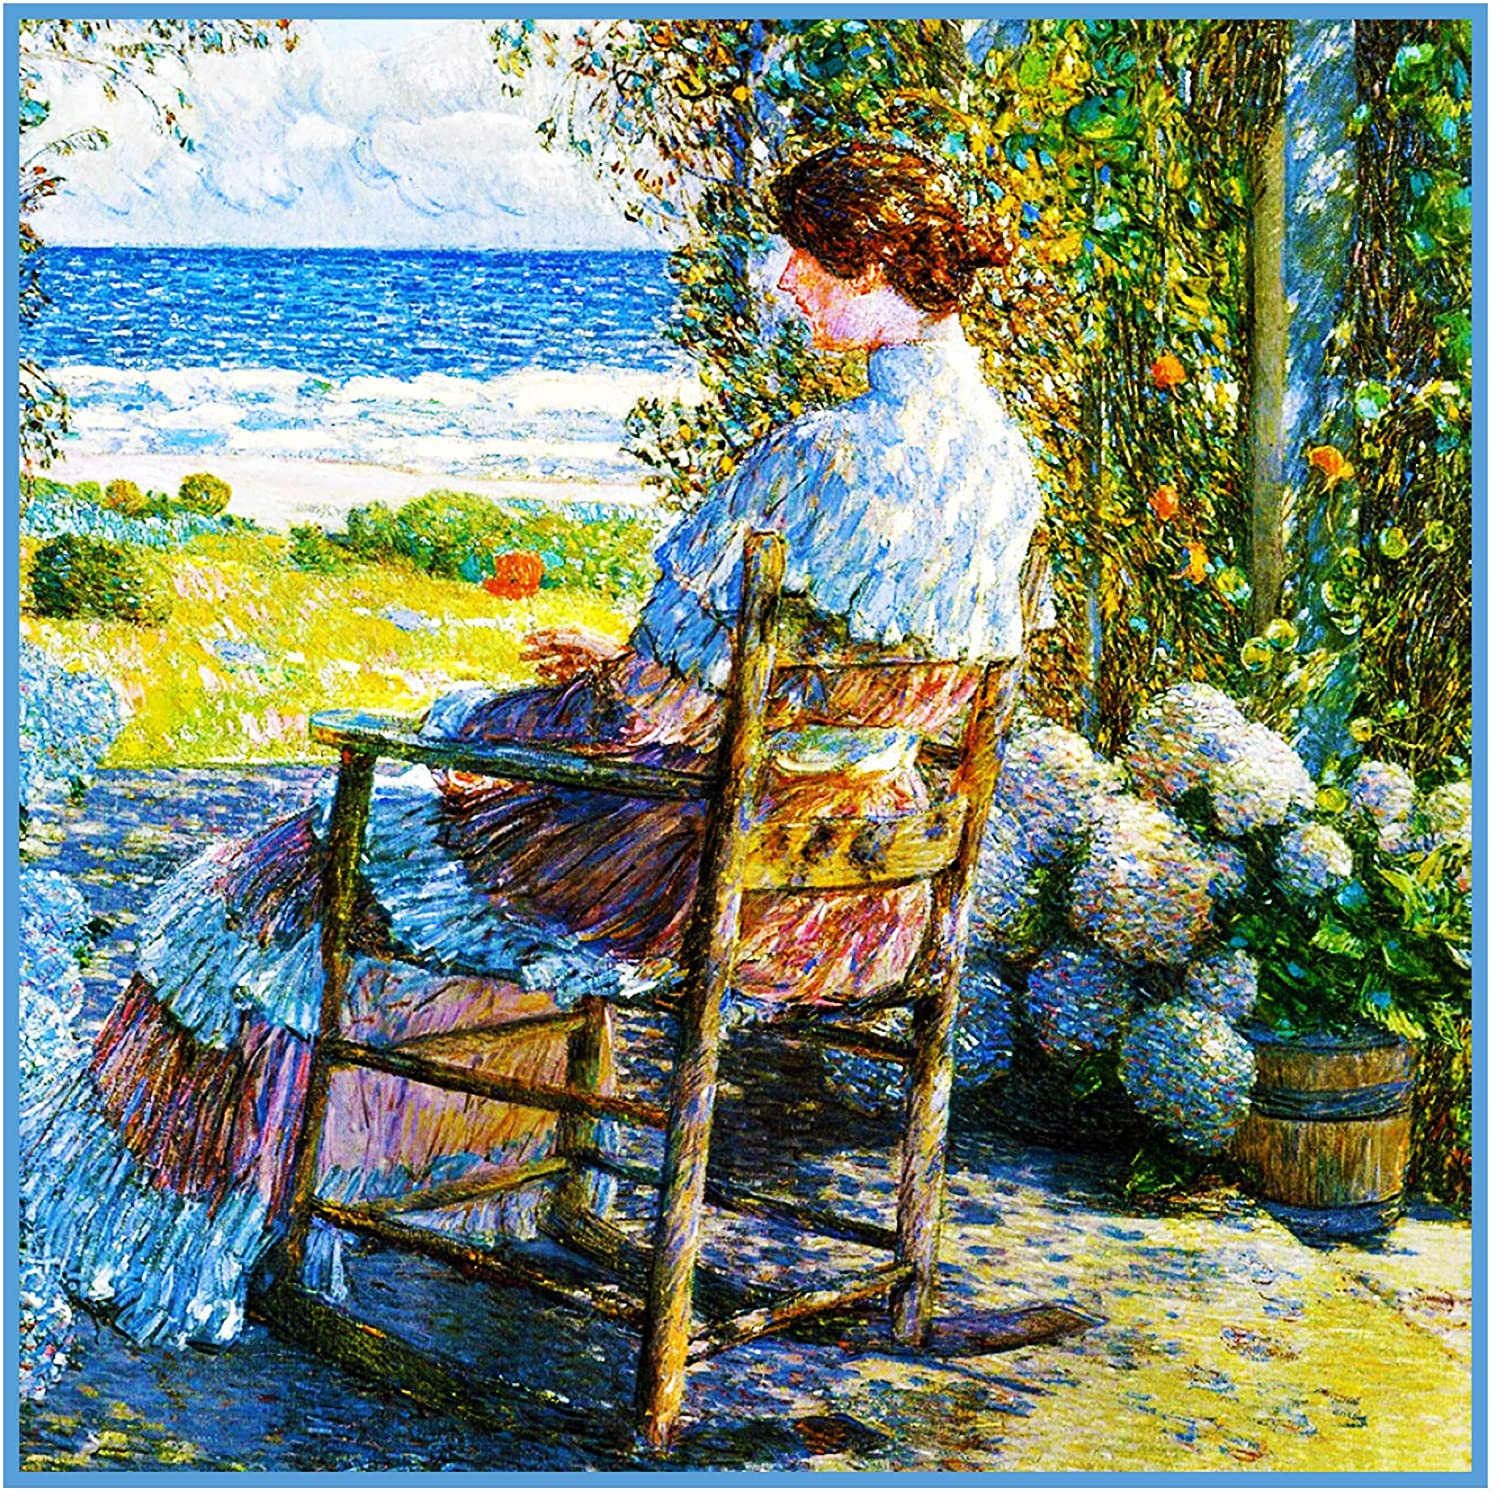 Orenco Originals Gazing at Sea from Porch in Isle Shoals American Impressionist Painter Childe Hassam Counted Cross Stitch Pattern